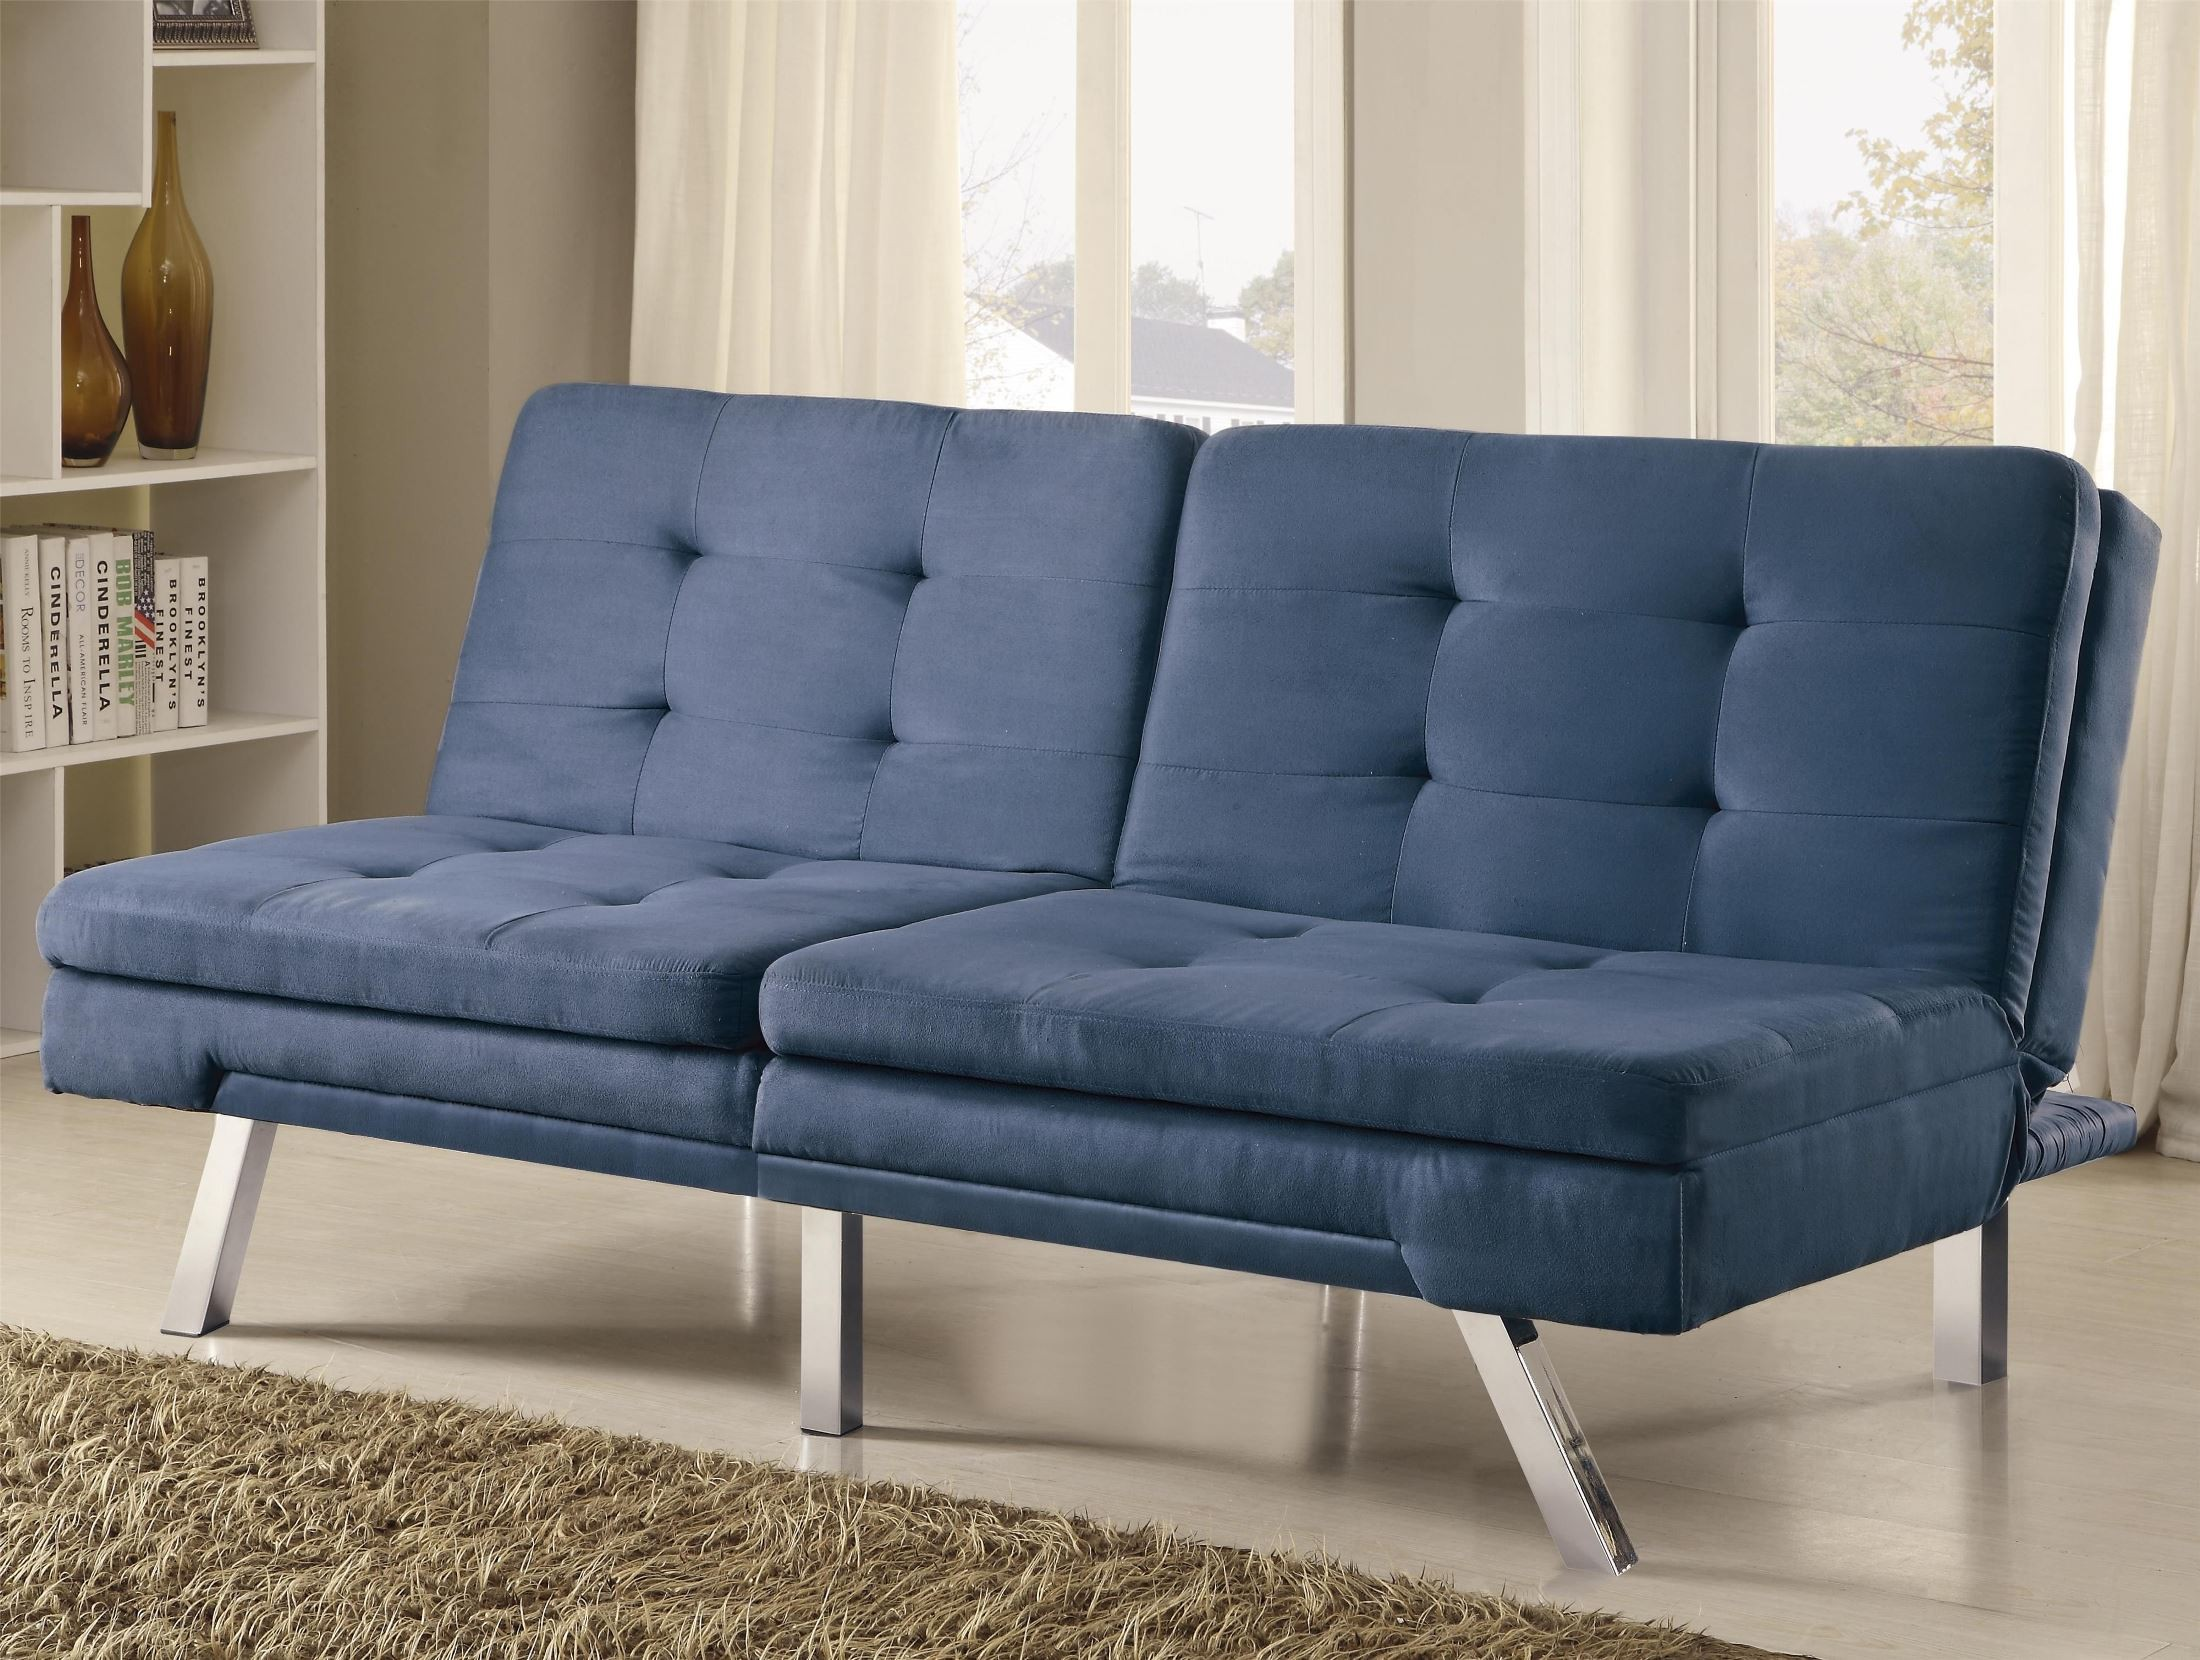 white tufted sofa bed low profile legs 300212 blue microfiber split back from